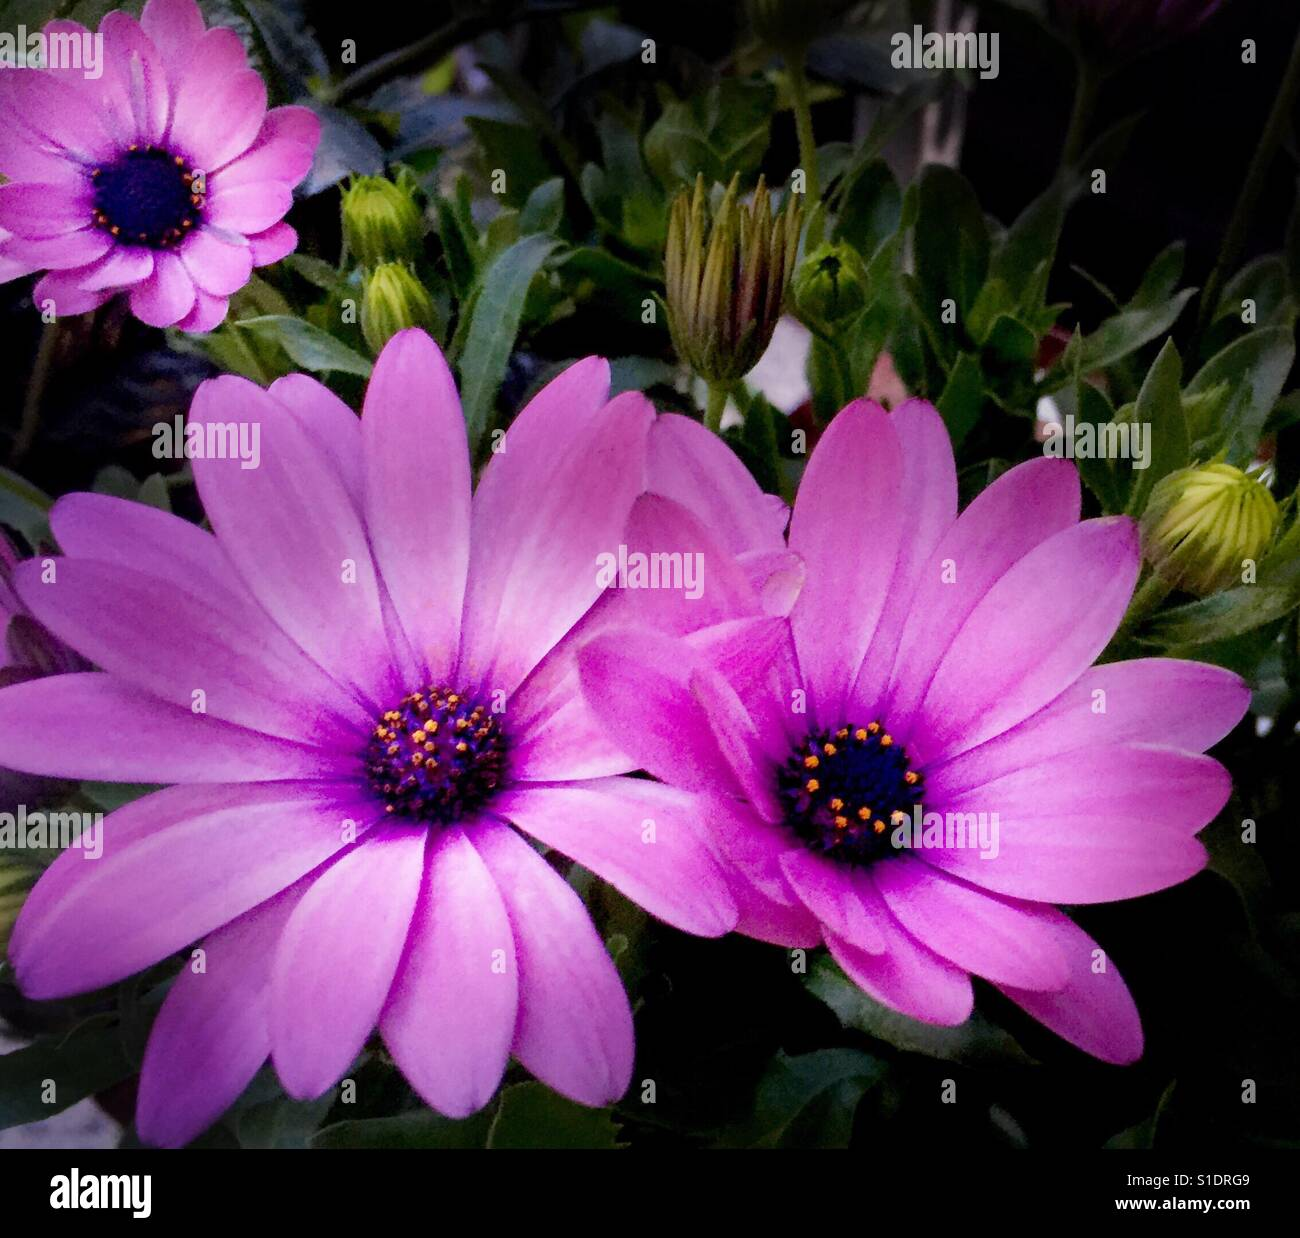 Osteo Akila Purple 'smaller' African Daisy (not really Daisys) natural greenery and yes it looks hot pink - Stock Image